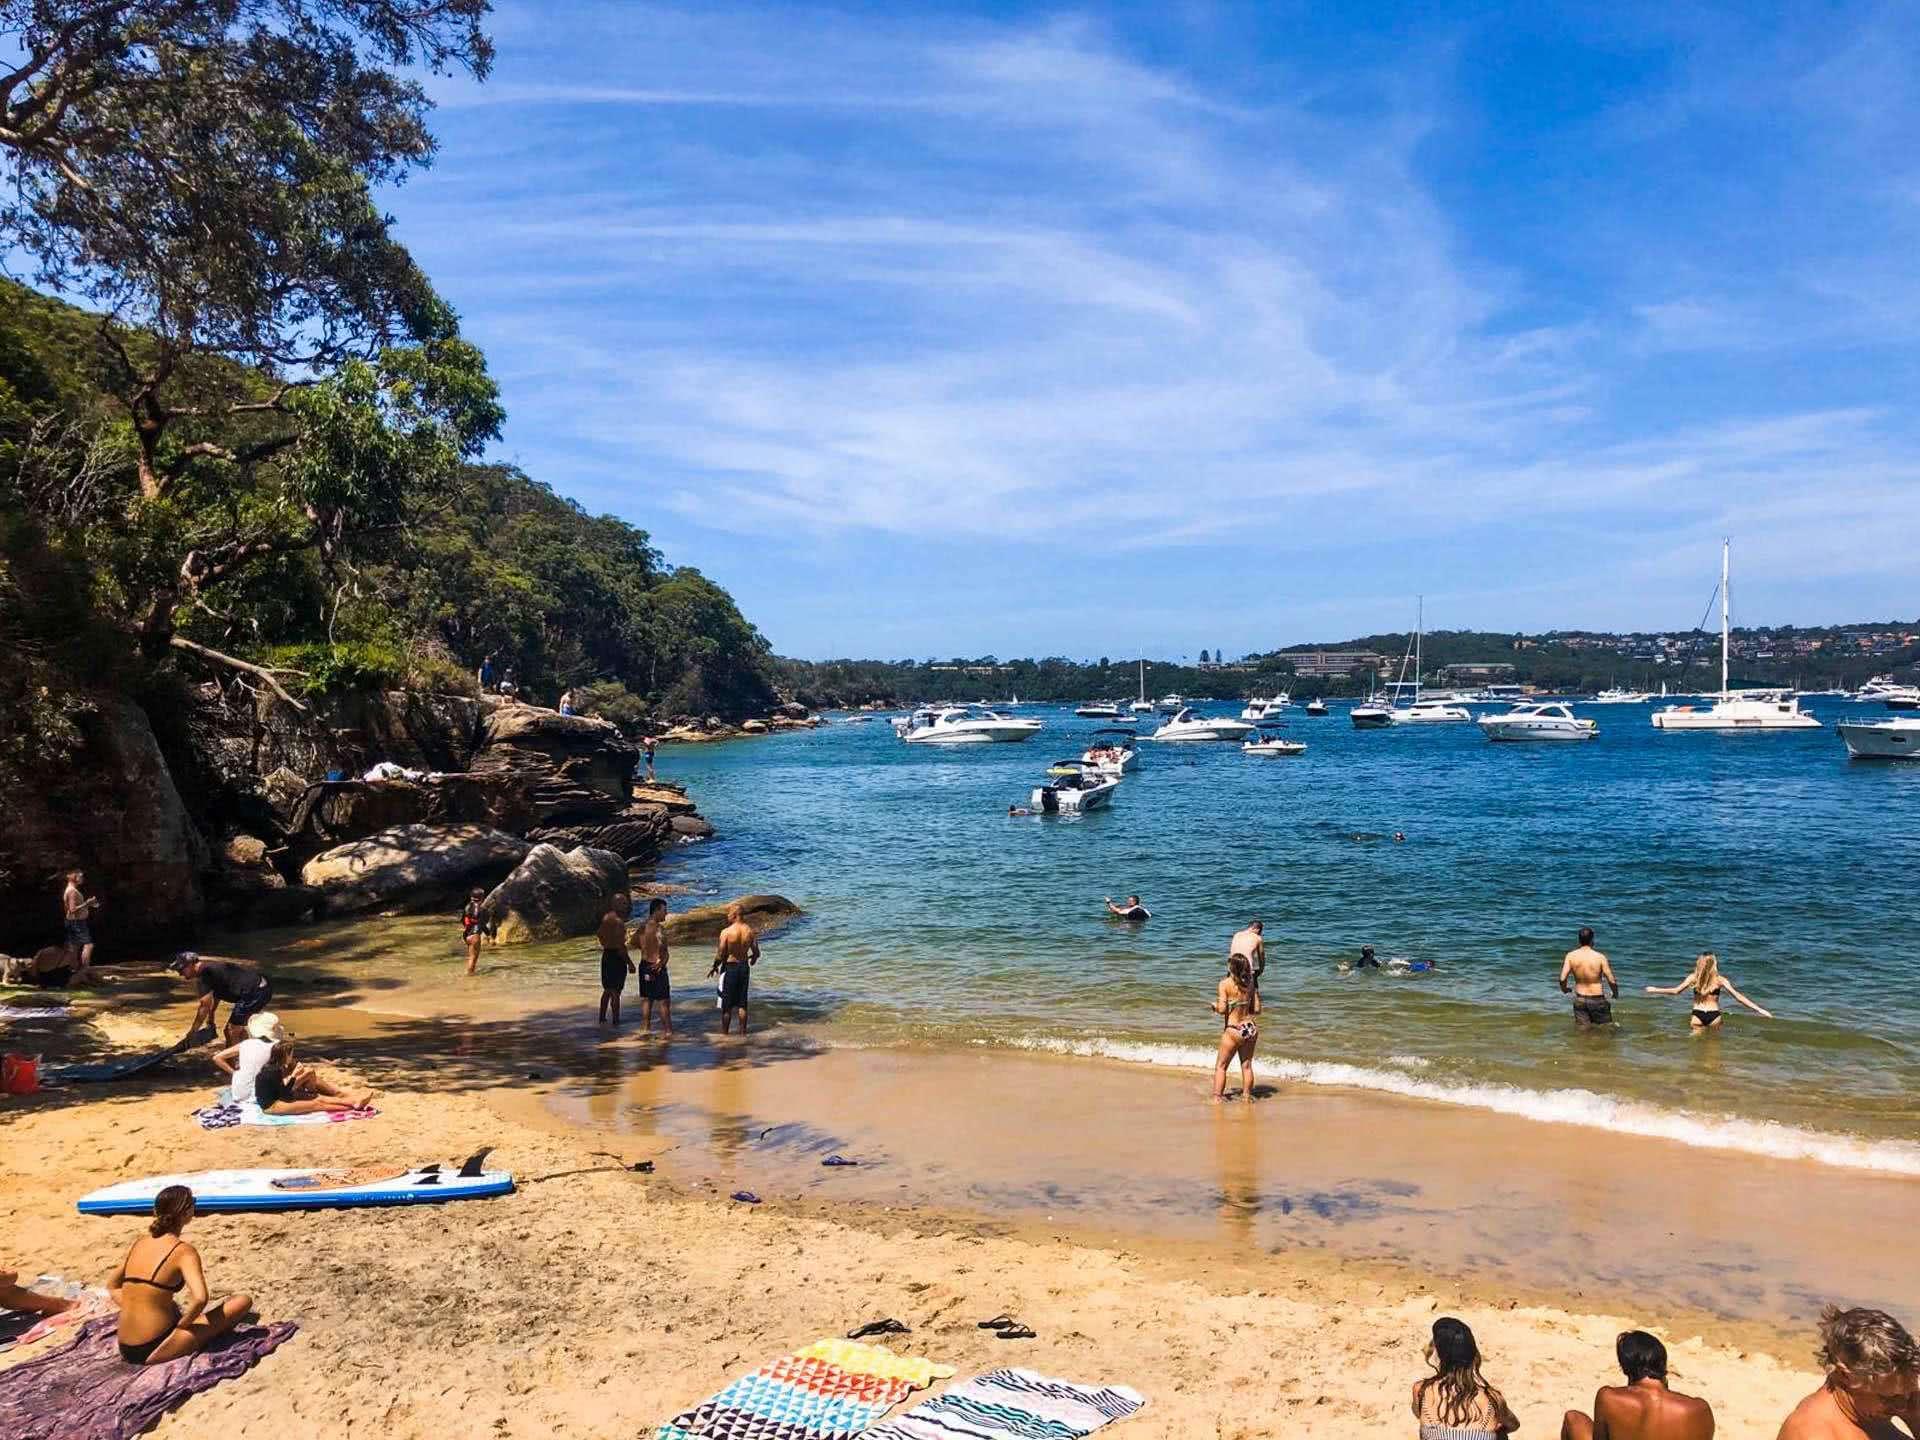 Spend a Day on the Spit to Manly Walk, Jonathan Tan, beach, people, swimming, harbour, sydney